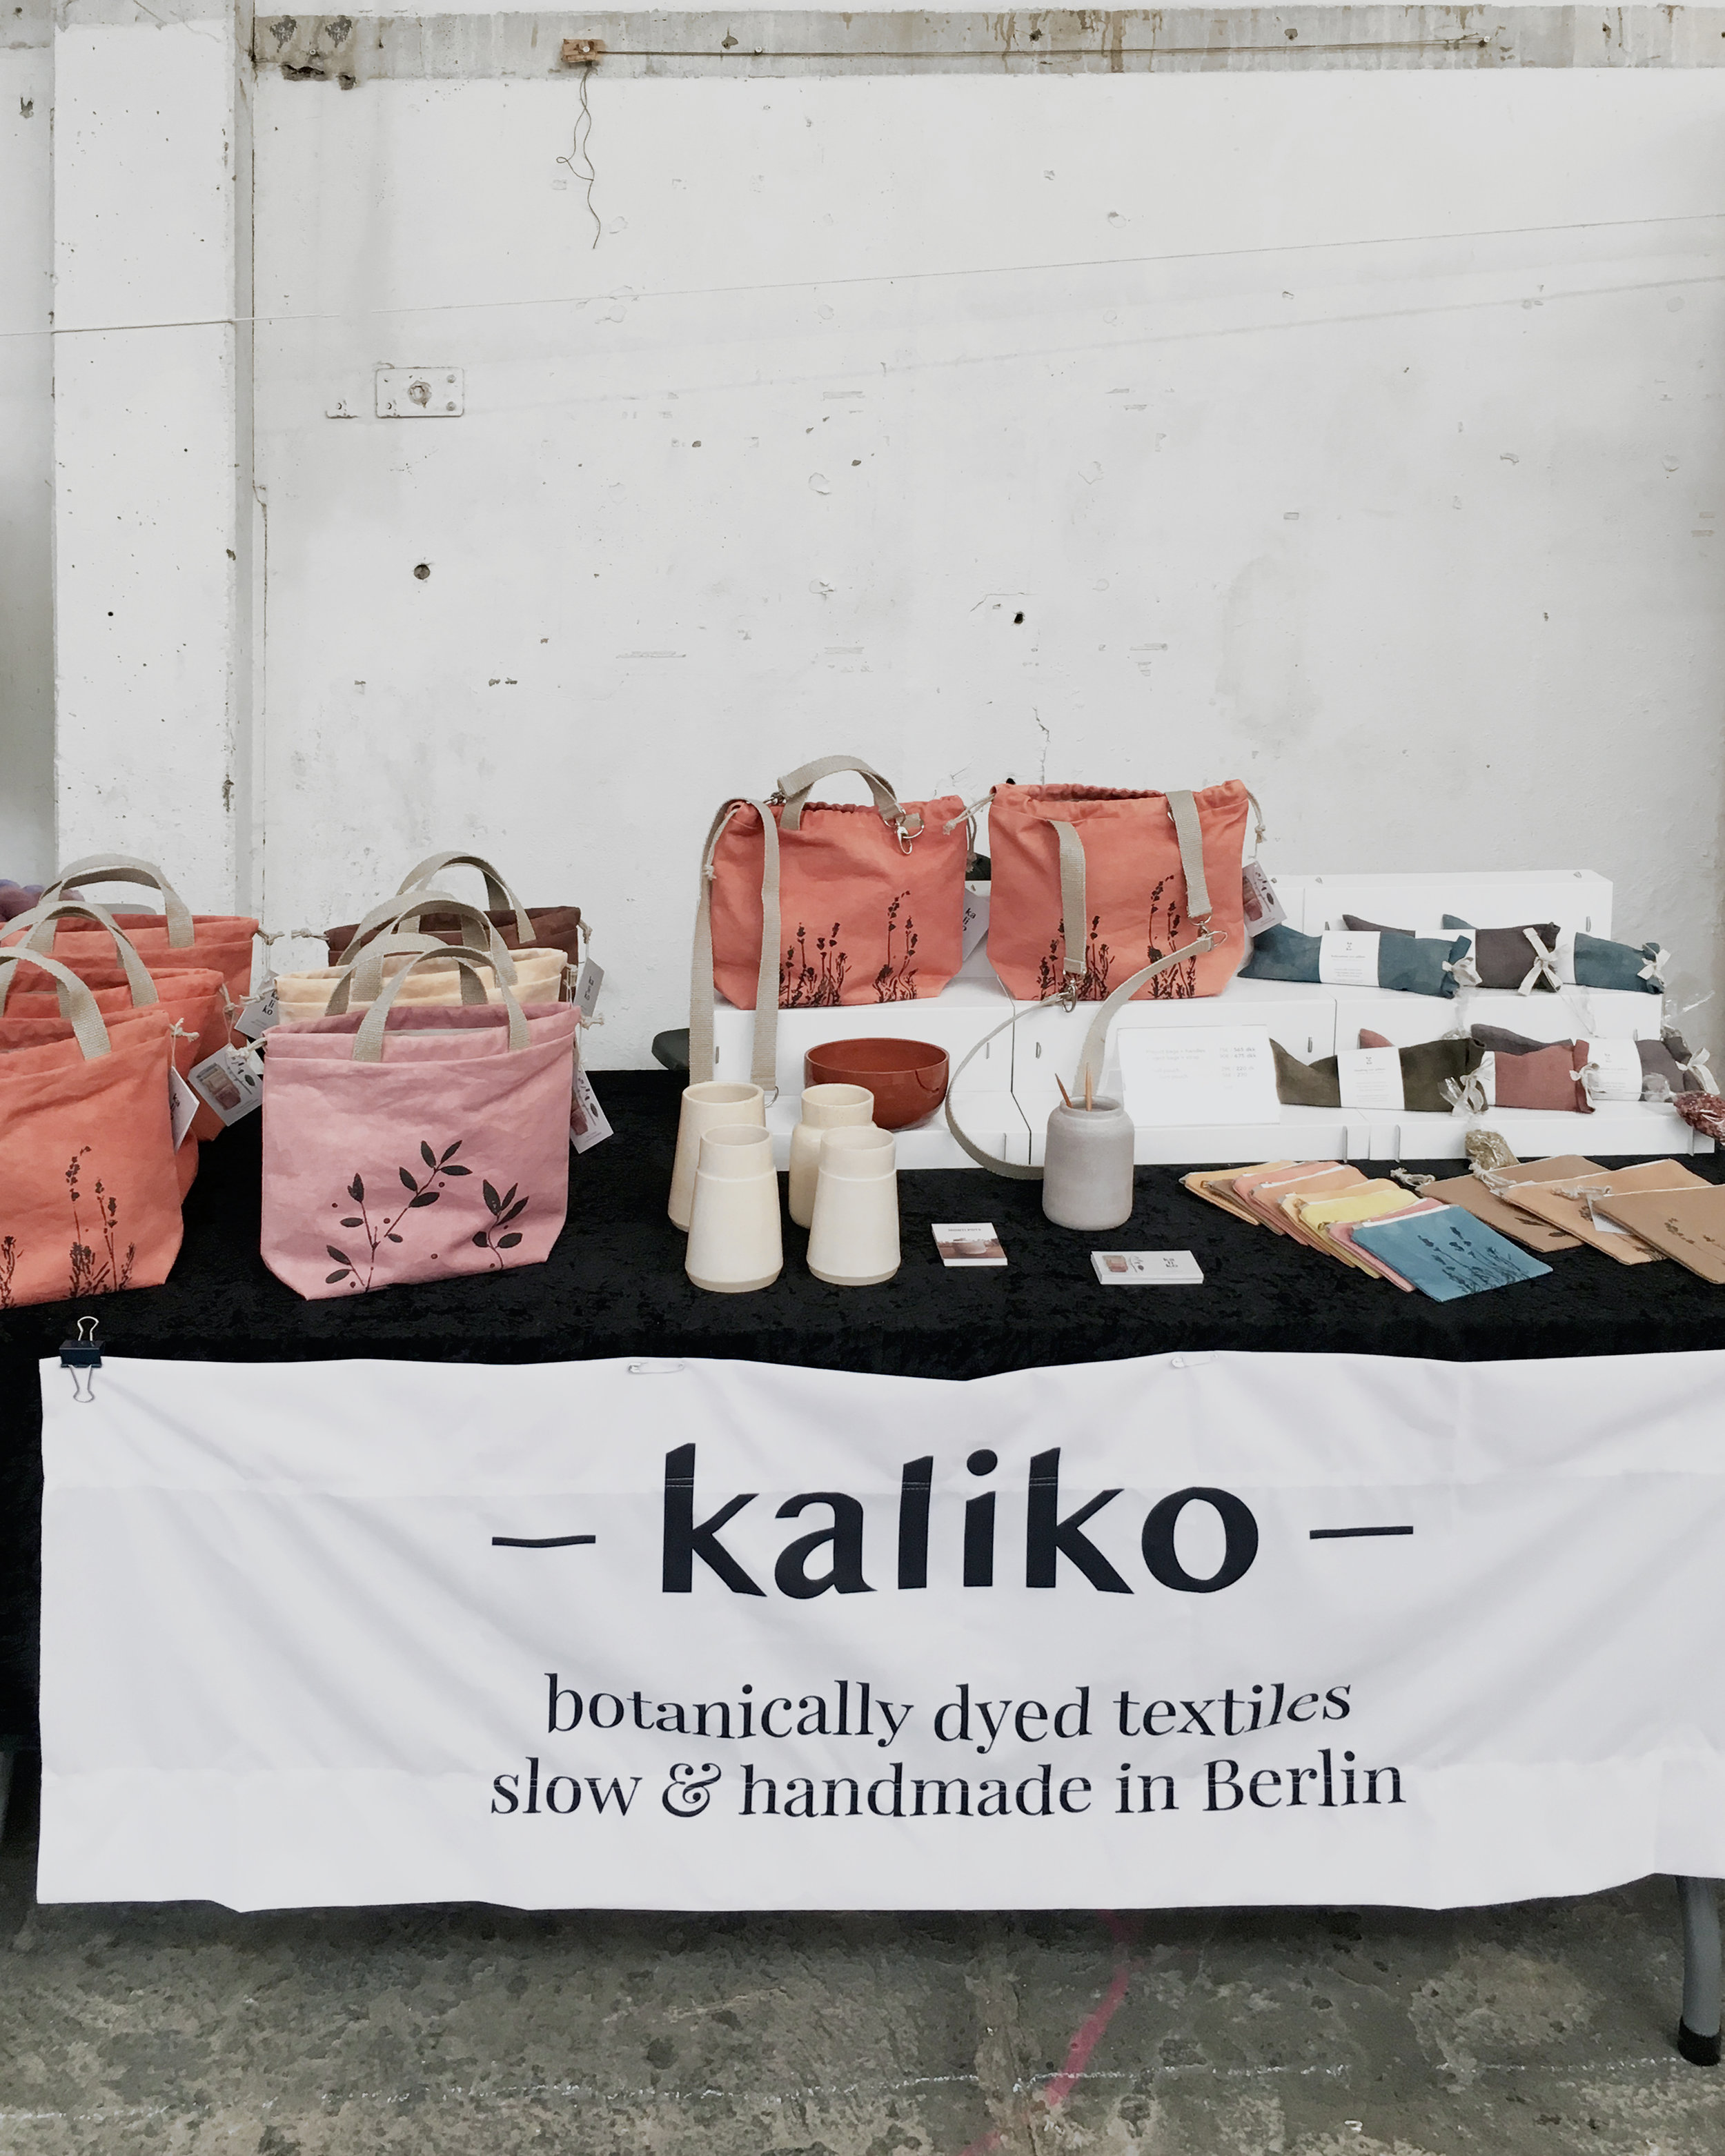 Kaliko botanical textiles at a craft fair in Roskilde, Denmark #textiles #bags #handmade #plantdyed